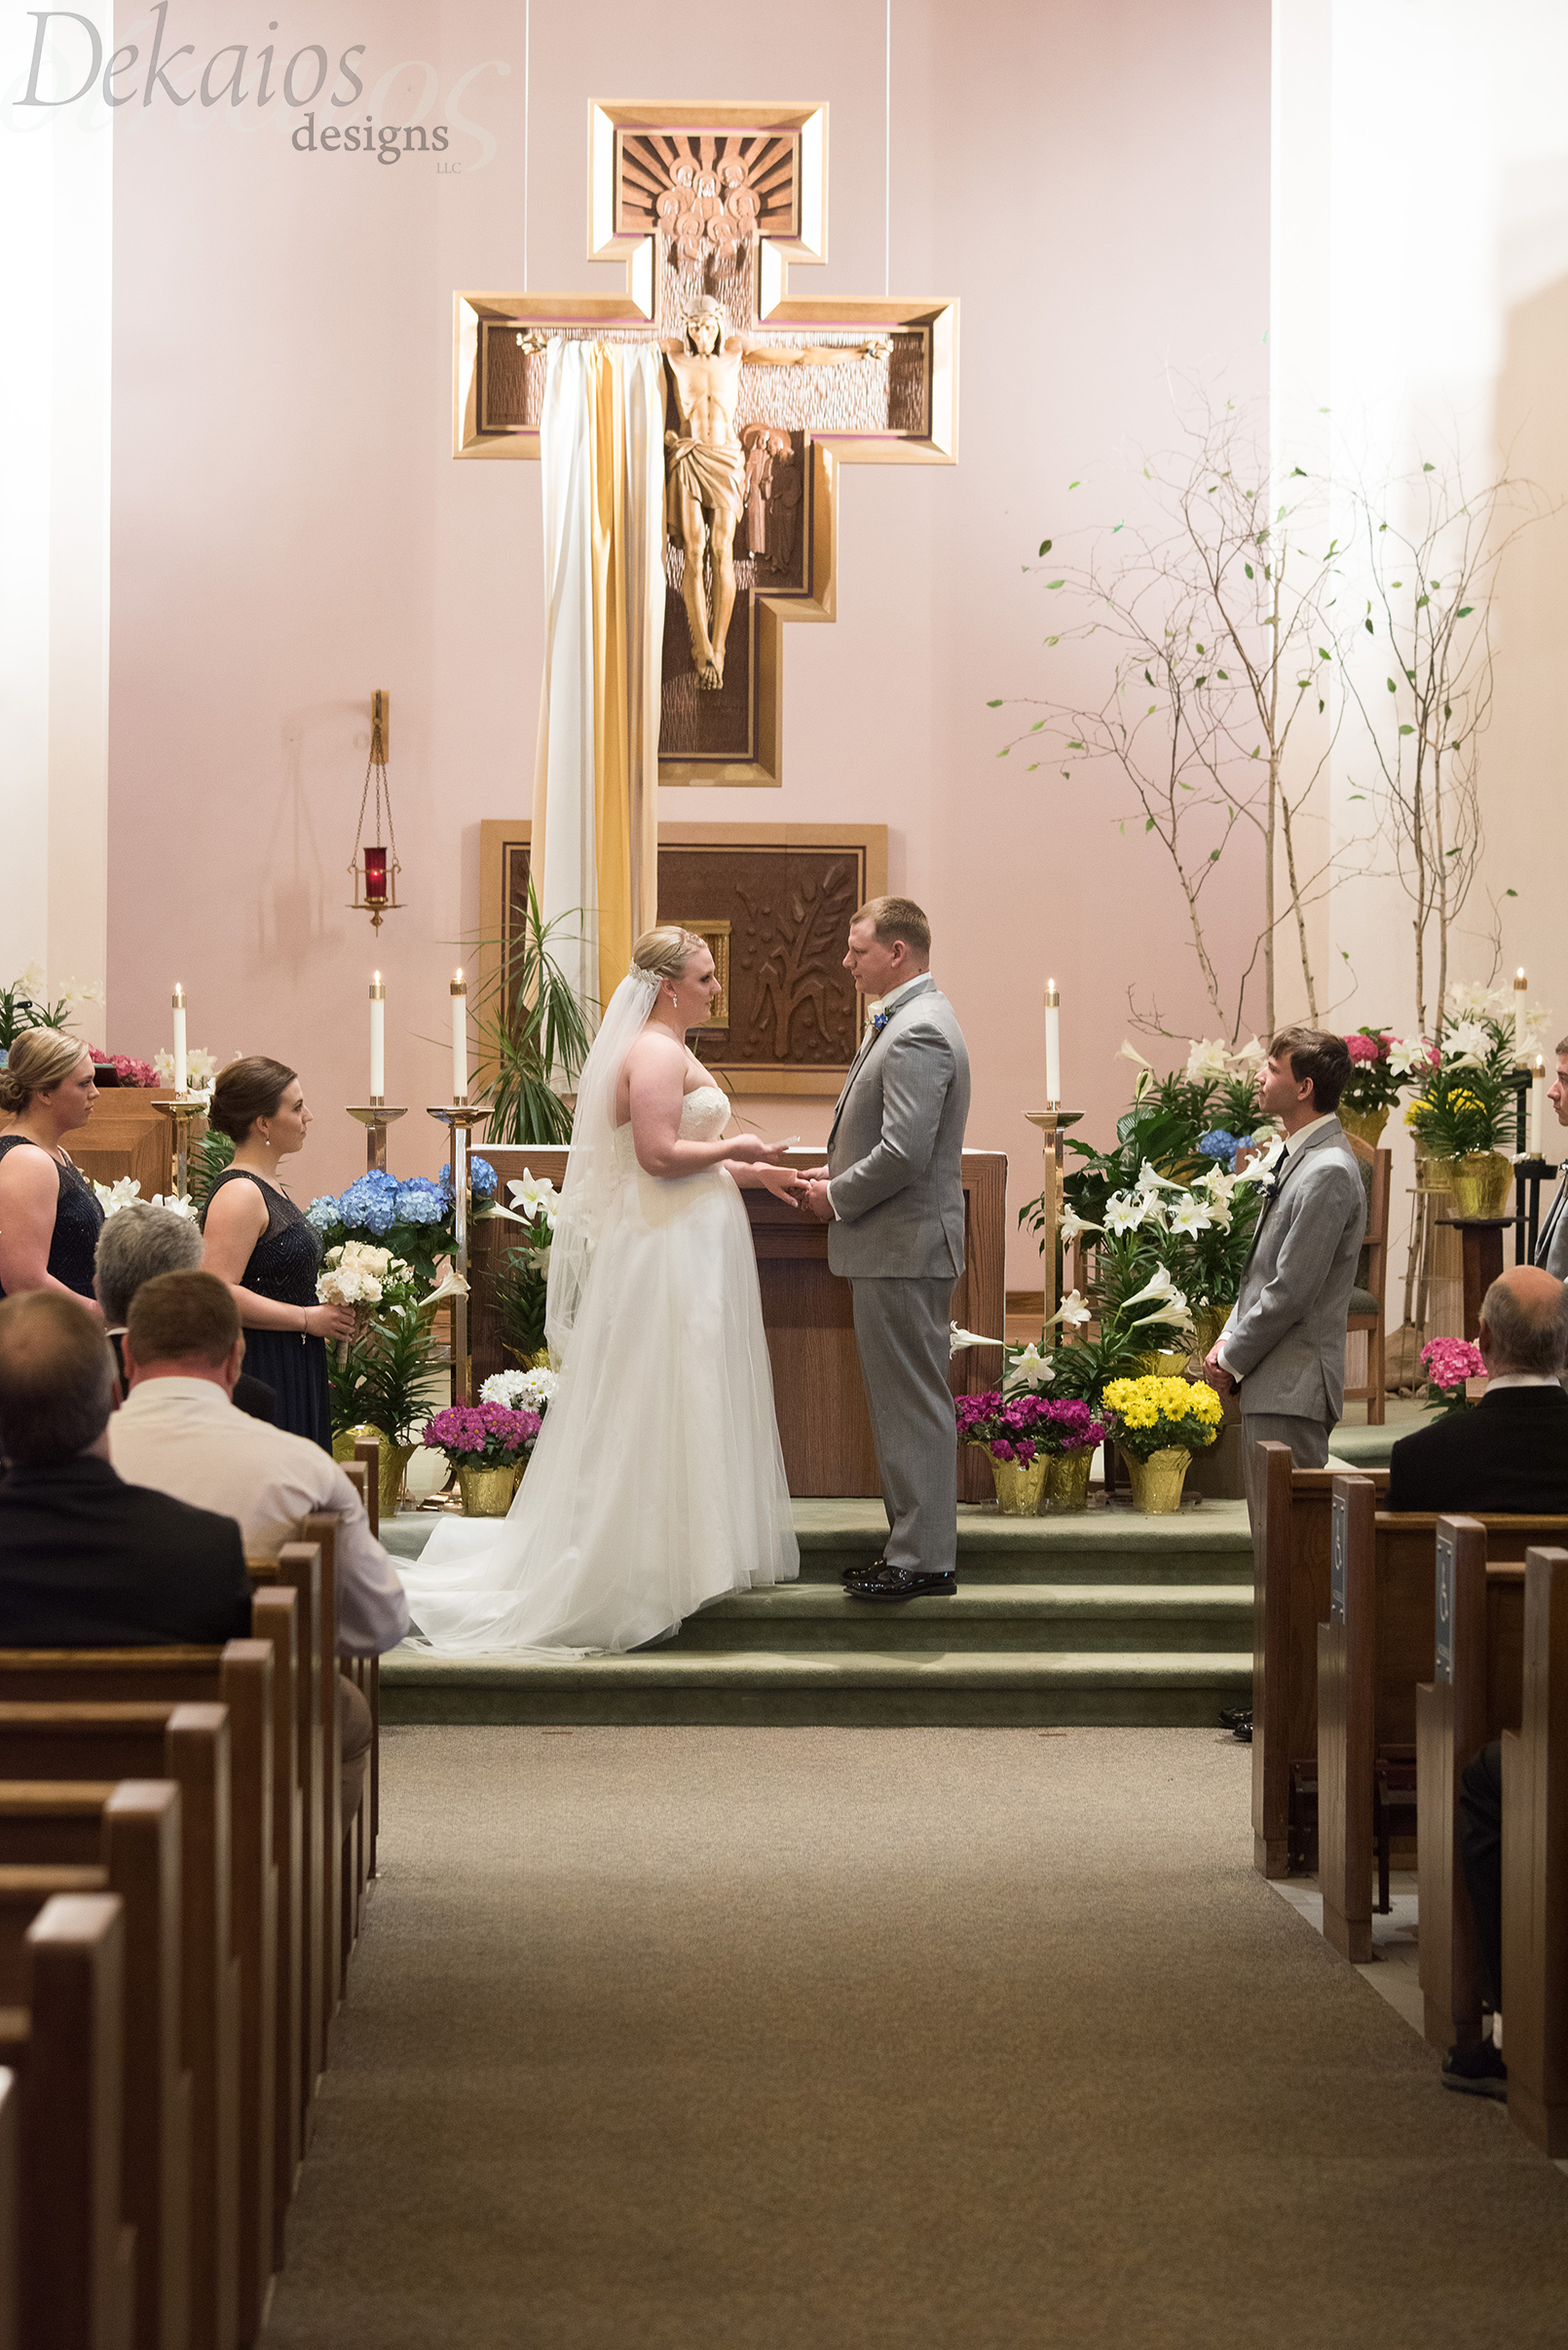 Taylor sharing her vows.